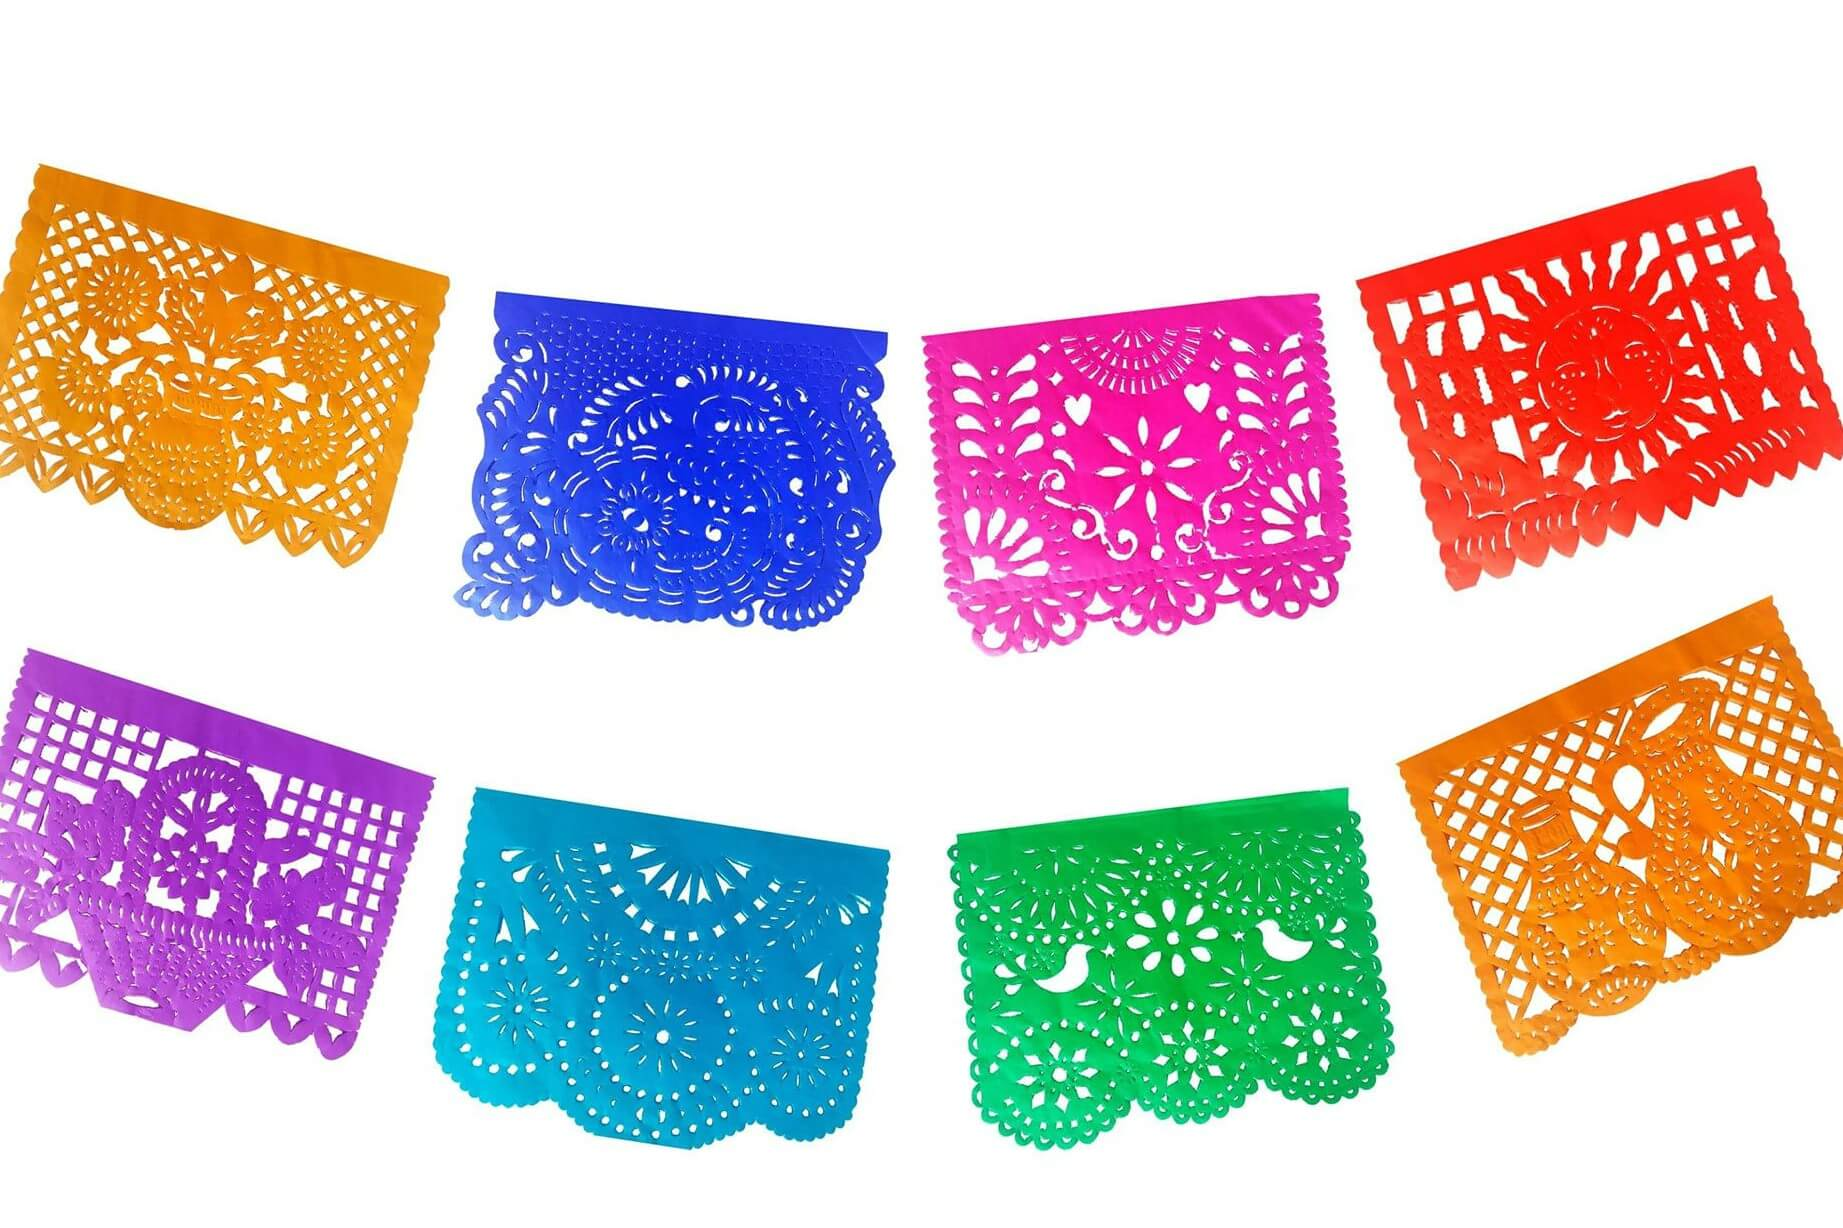 Drop-In Workshop: Papel Picado